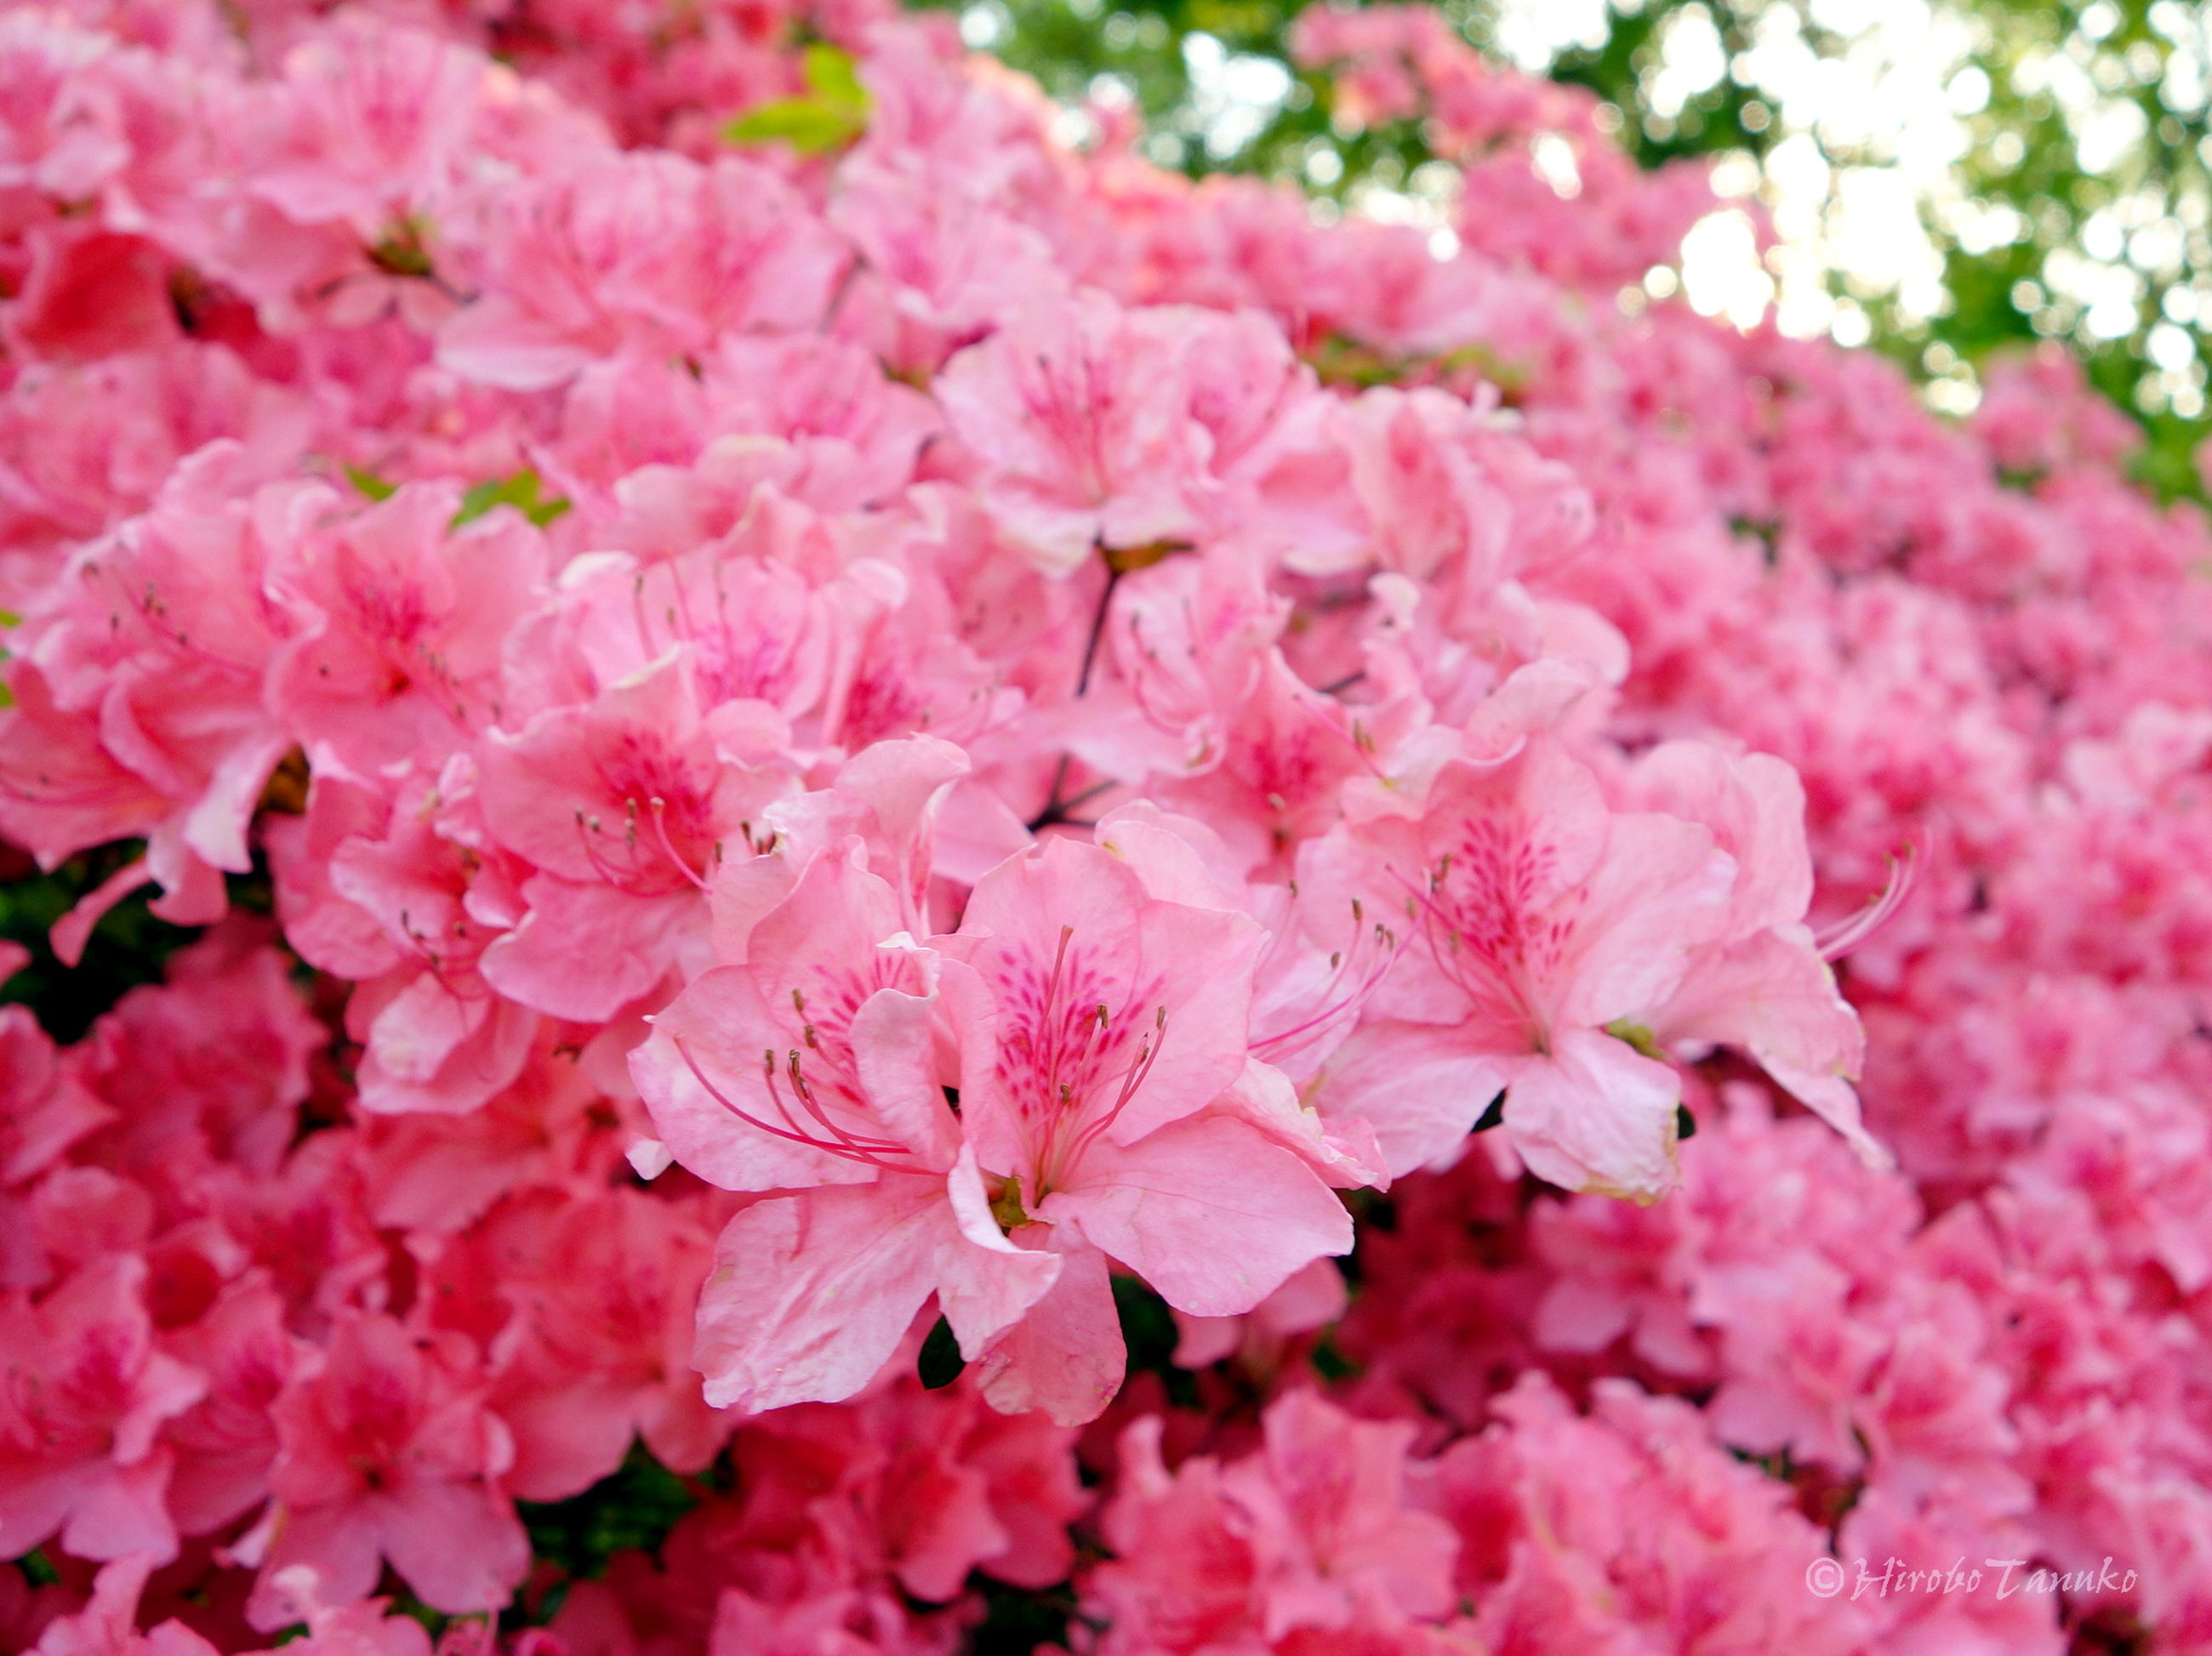 flower, freshness, fragility, petal, beauty in nature, pink color, growth, flower head, nature, blooming, close-up, in bloom, blossom, backgrounds, full frame, pink, plant, springtime, botany, park - man made space